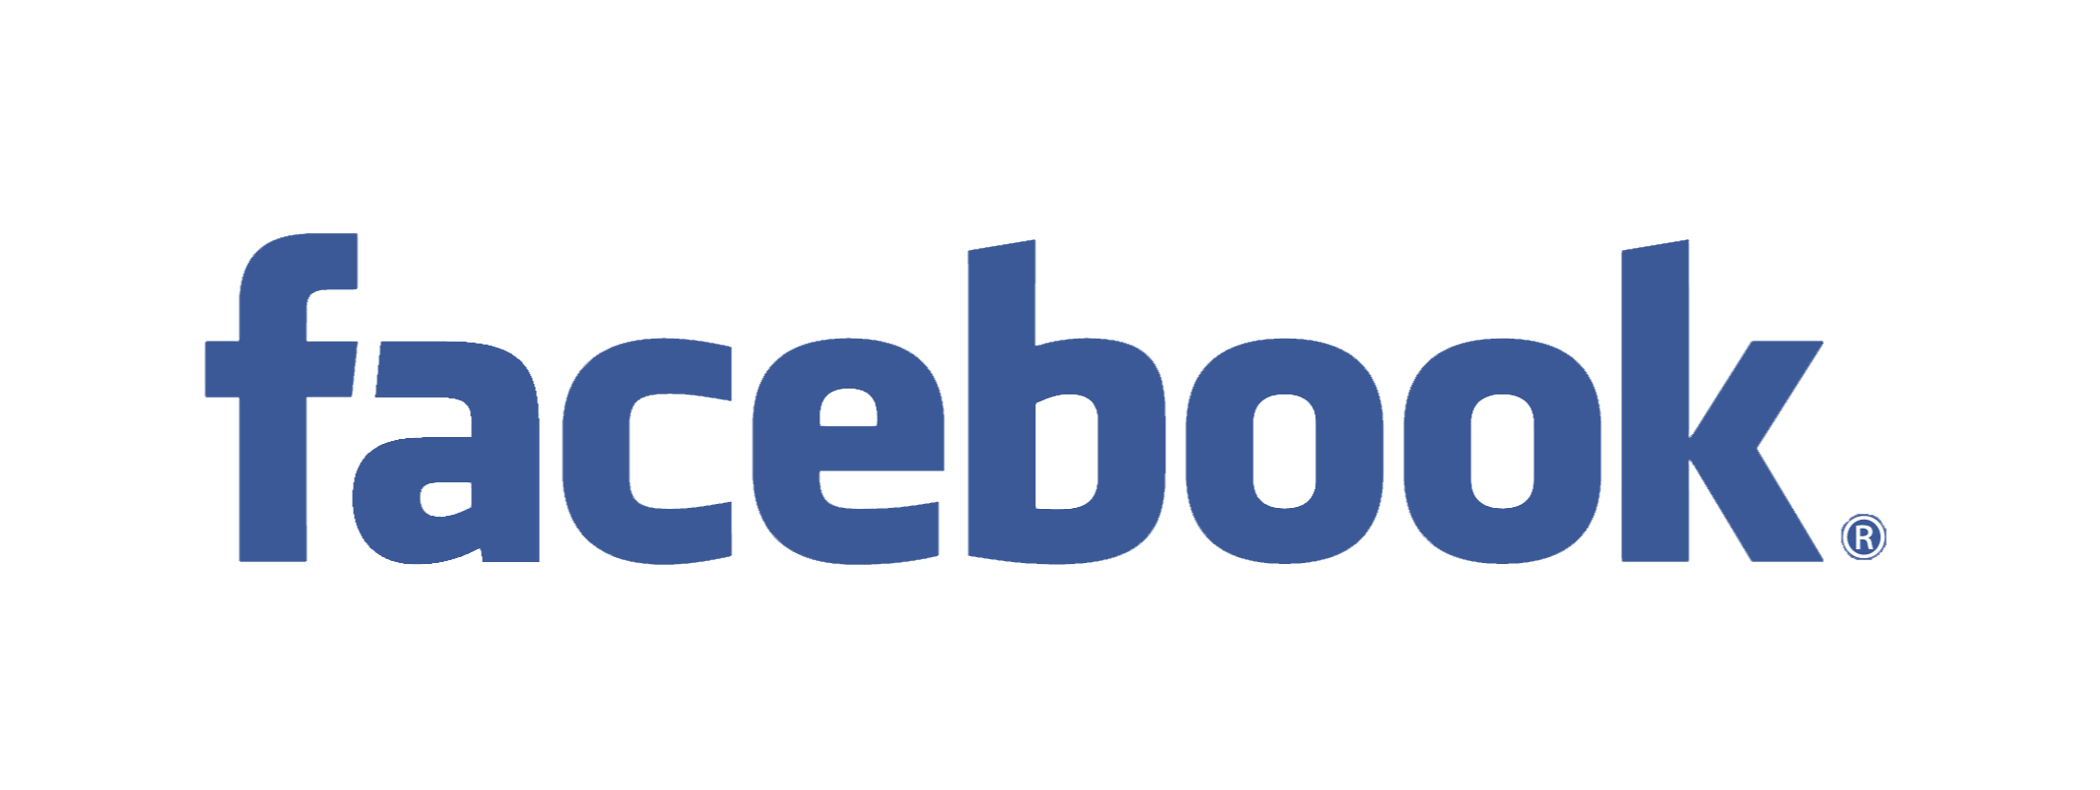 facebook-logo-reversed.png